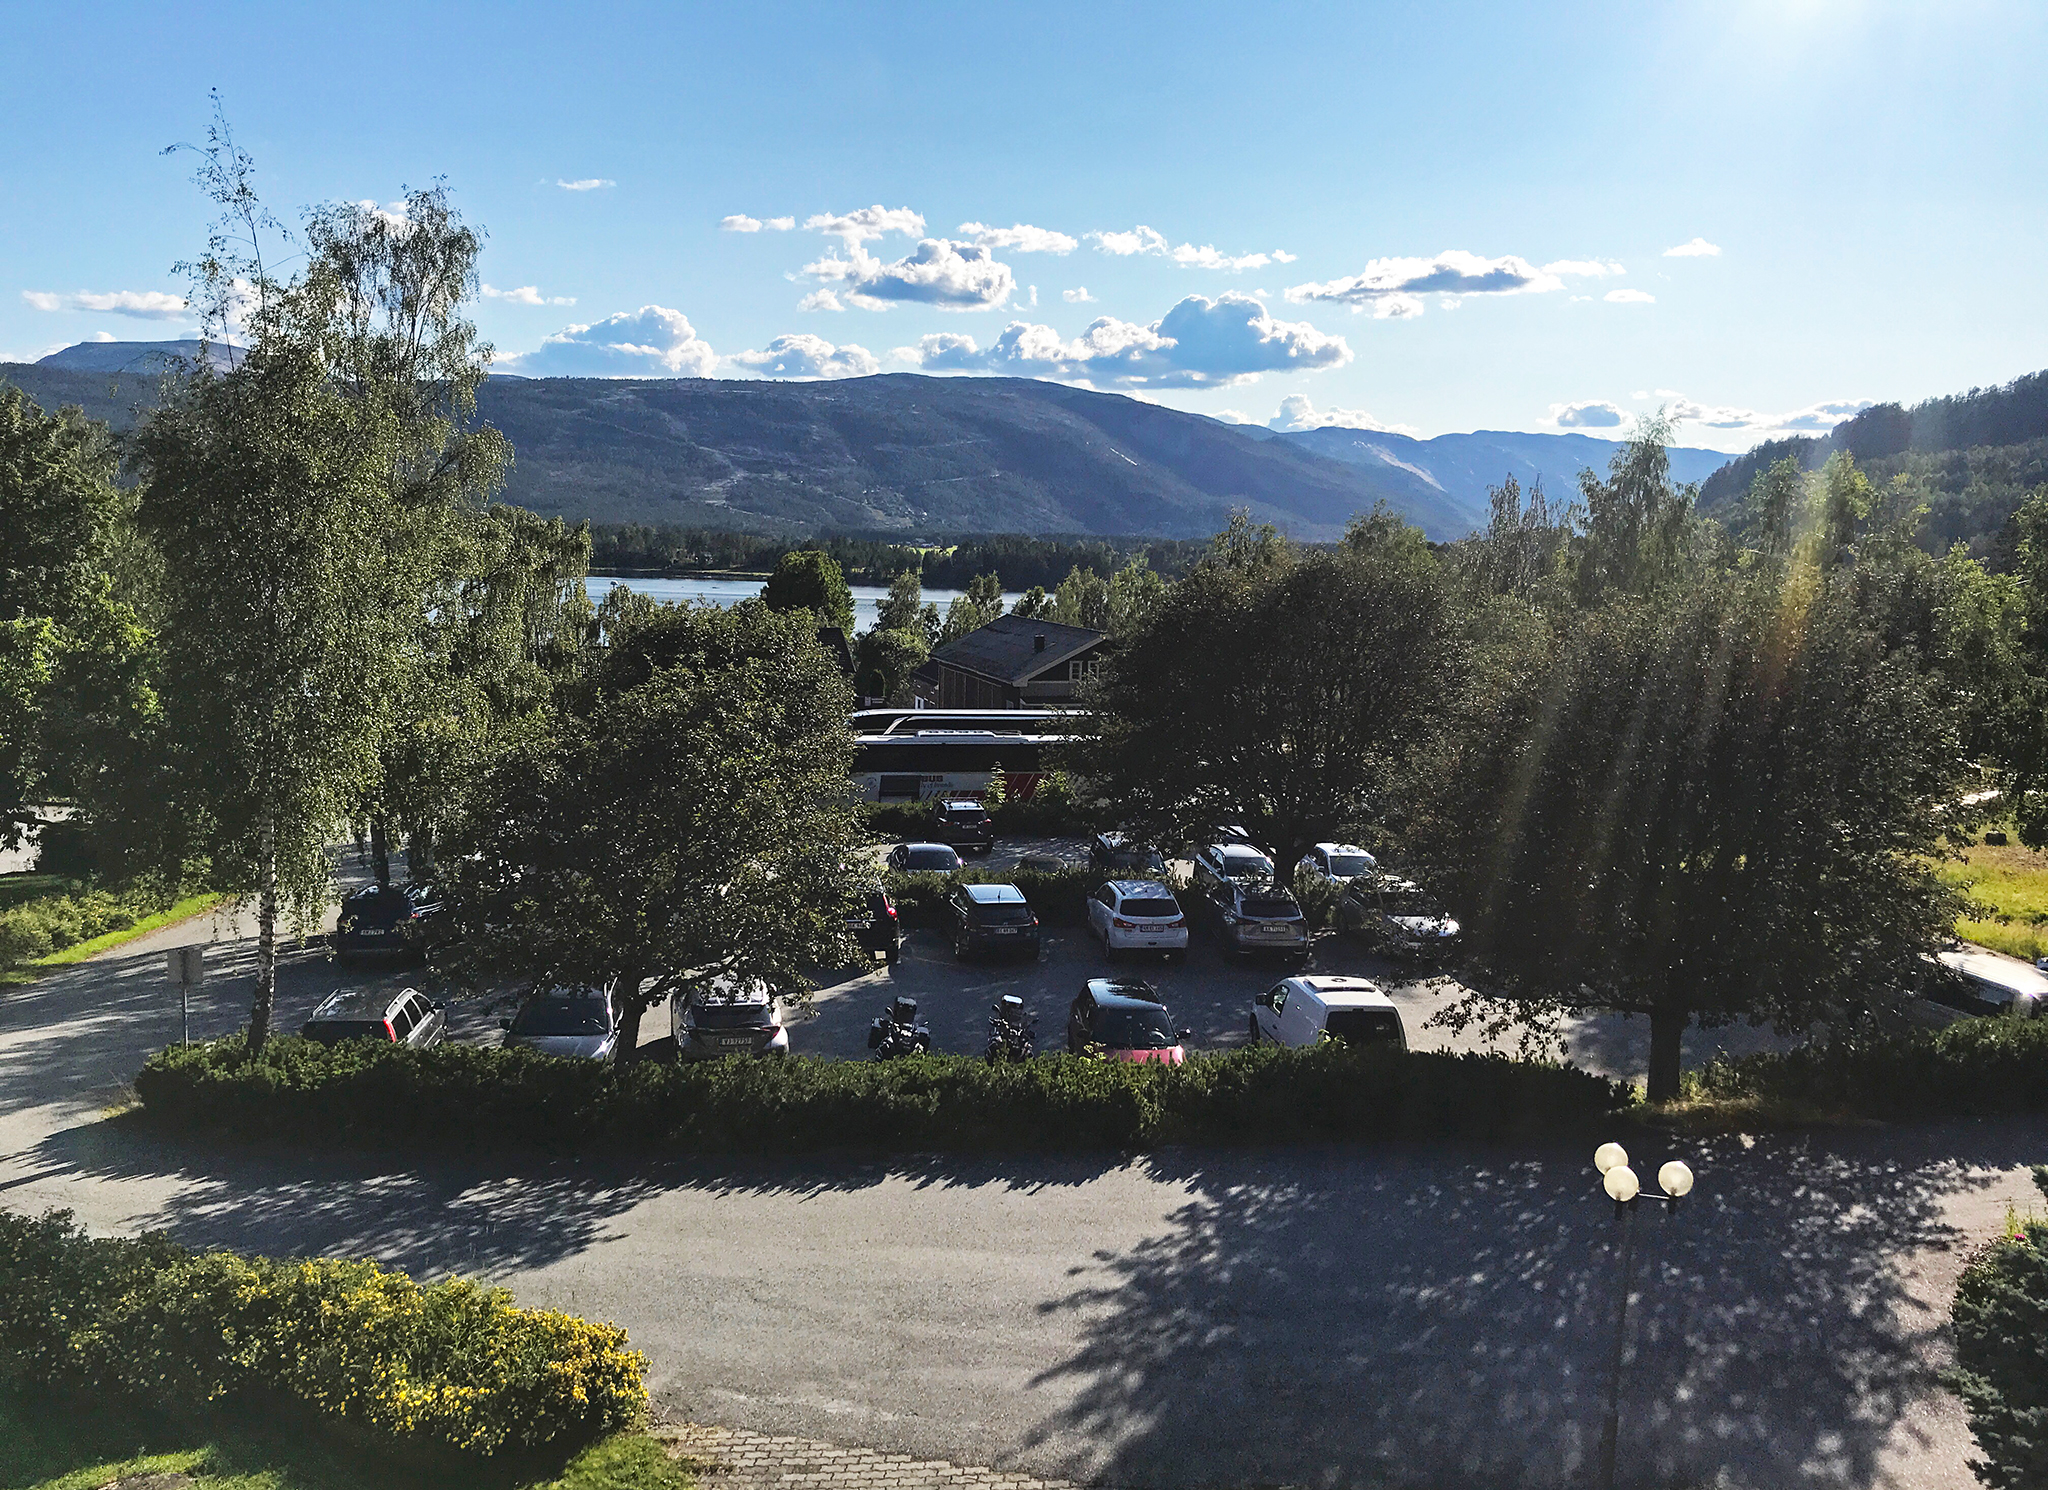 View from Straand hotel, Vrådal